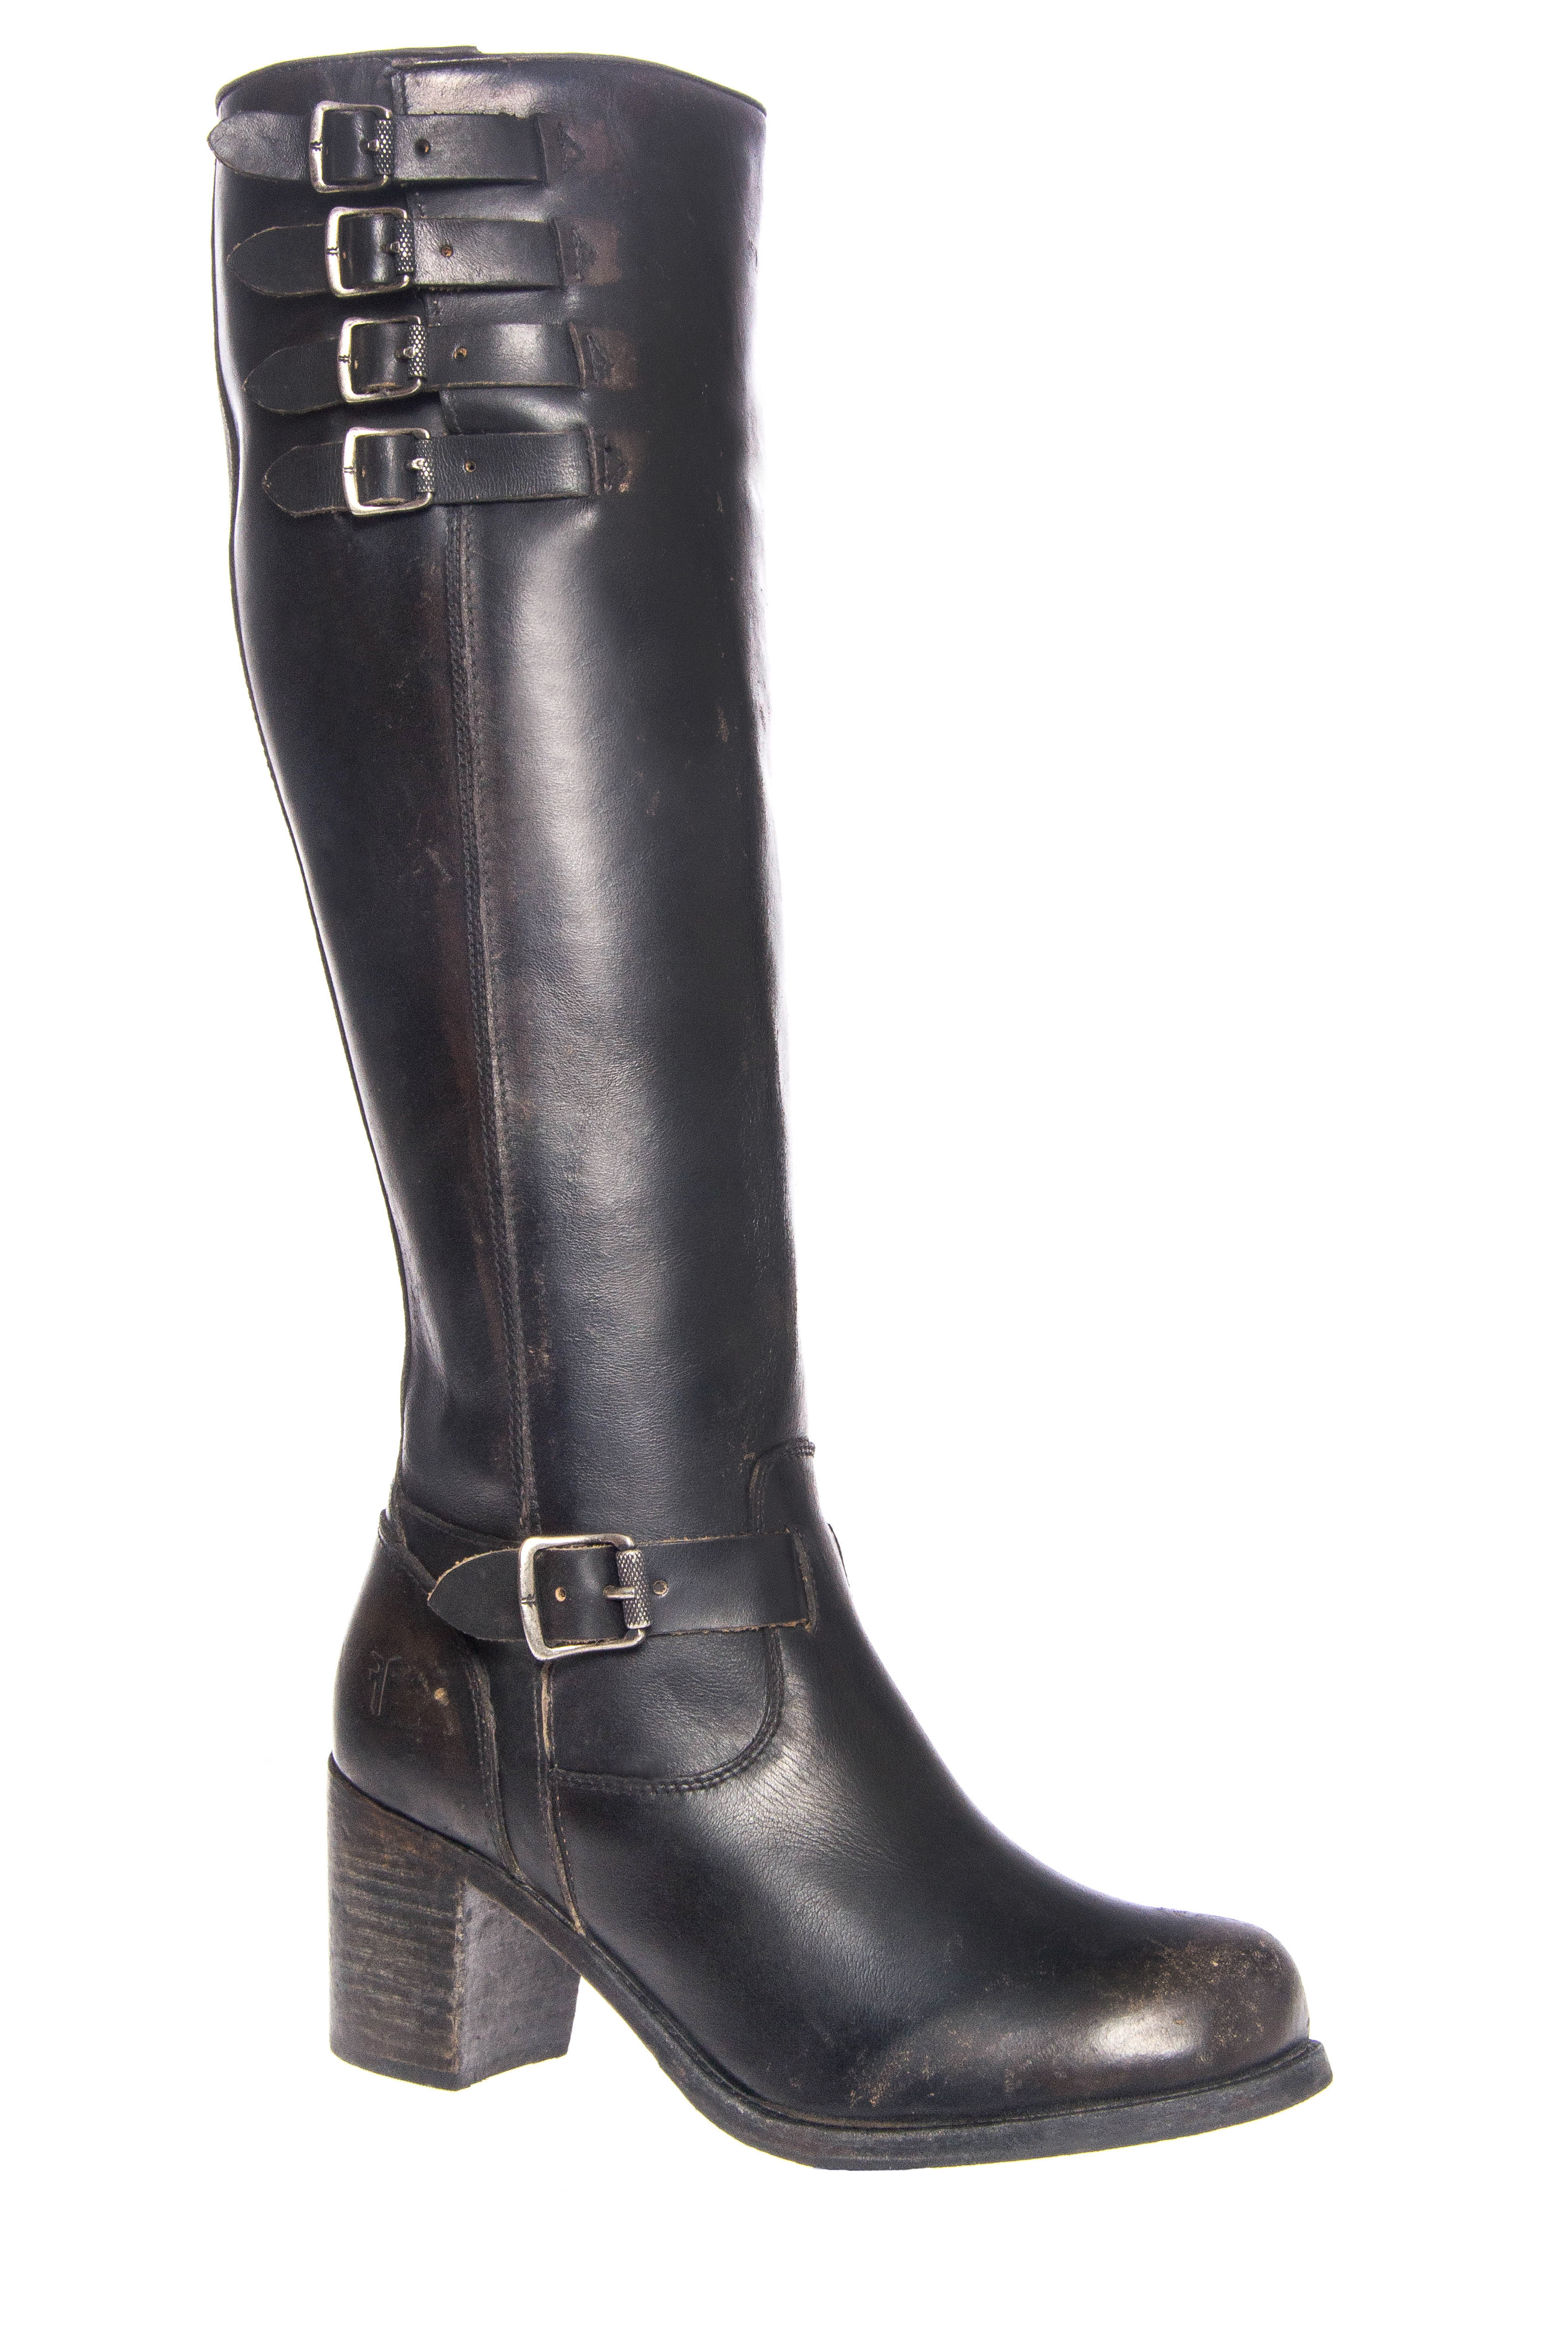 Frye Kelly Belted Tall Mid Heel Boots - Black